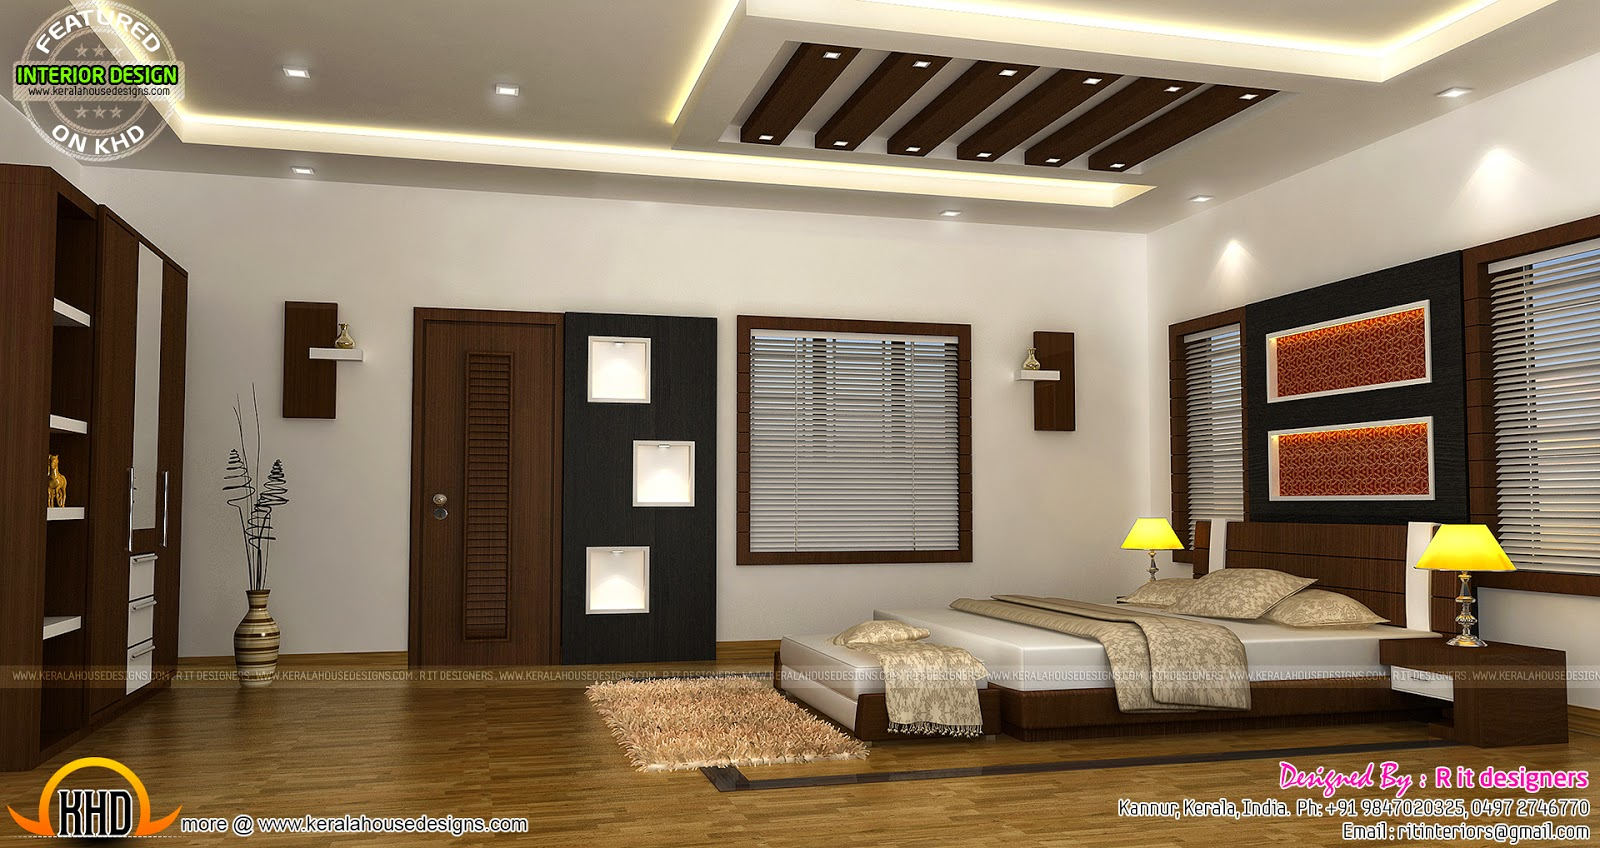 Bedroom interior design with cost kerala home design and for House design interior decorating